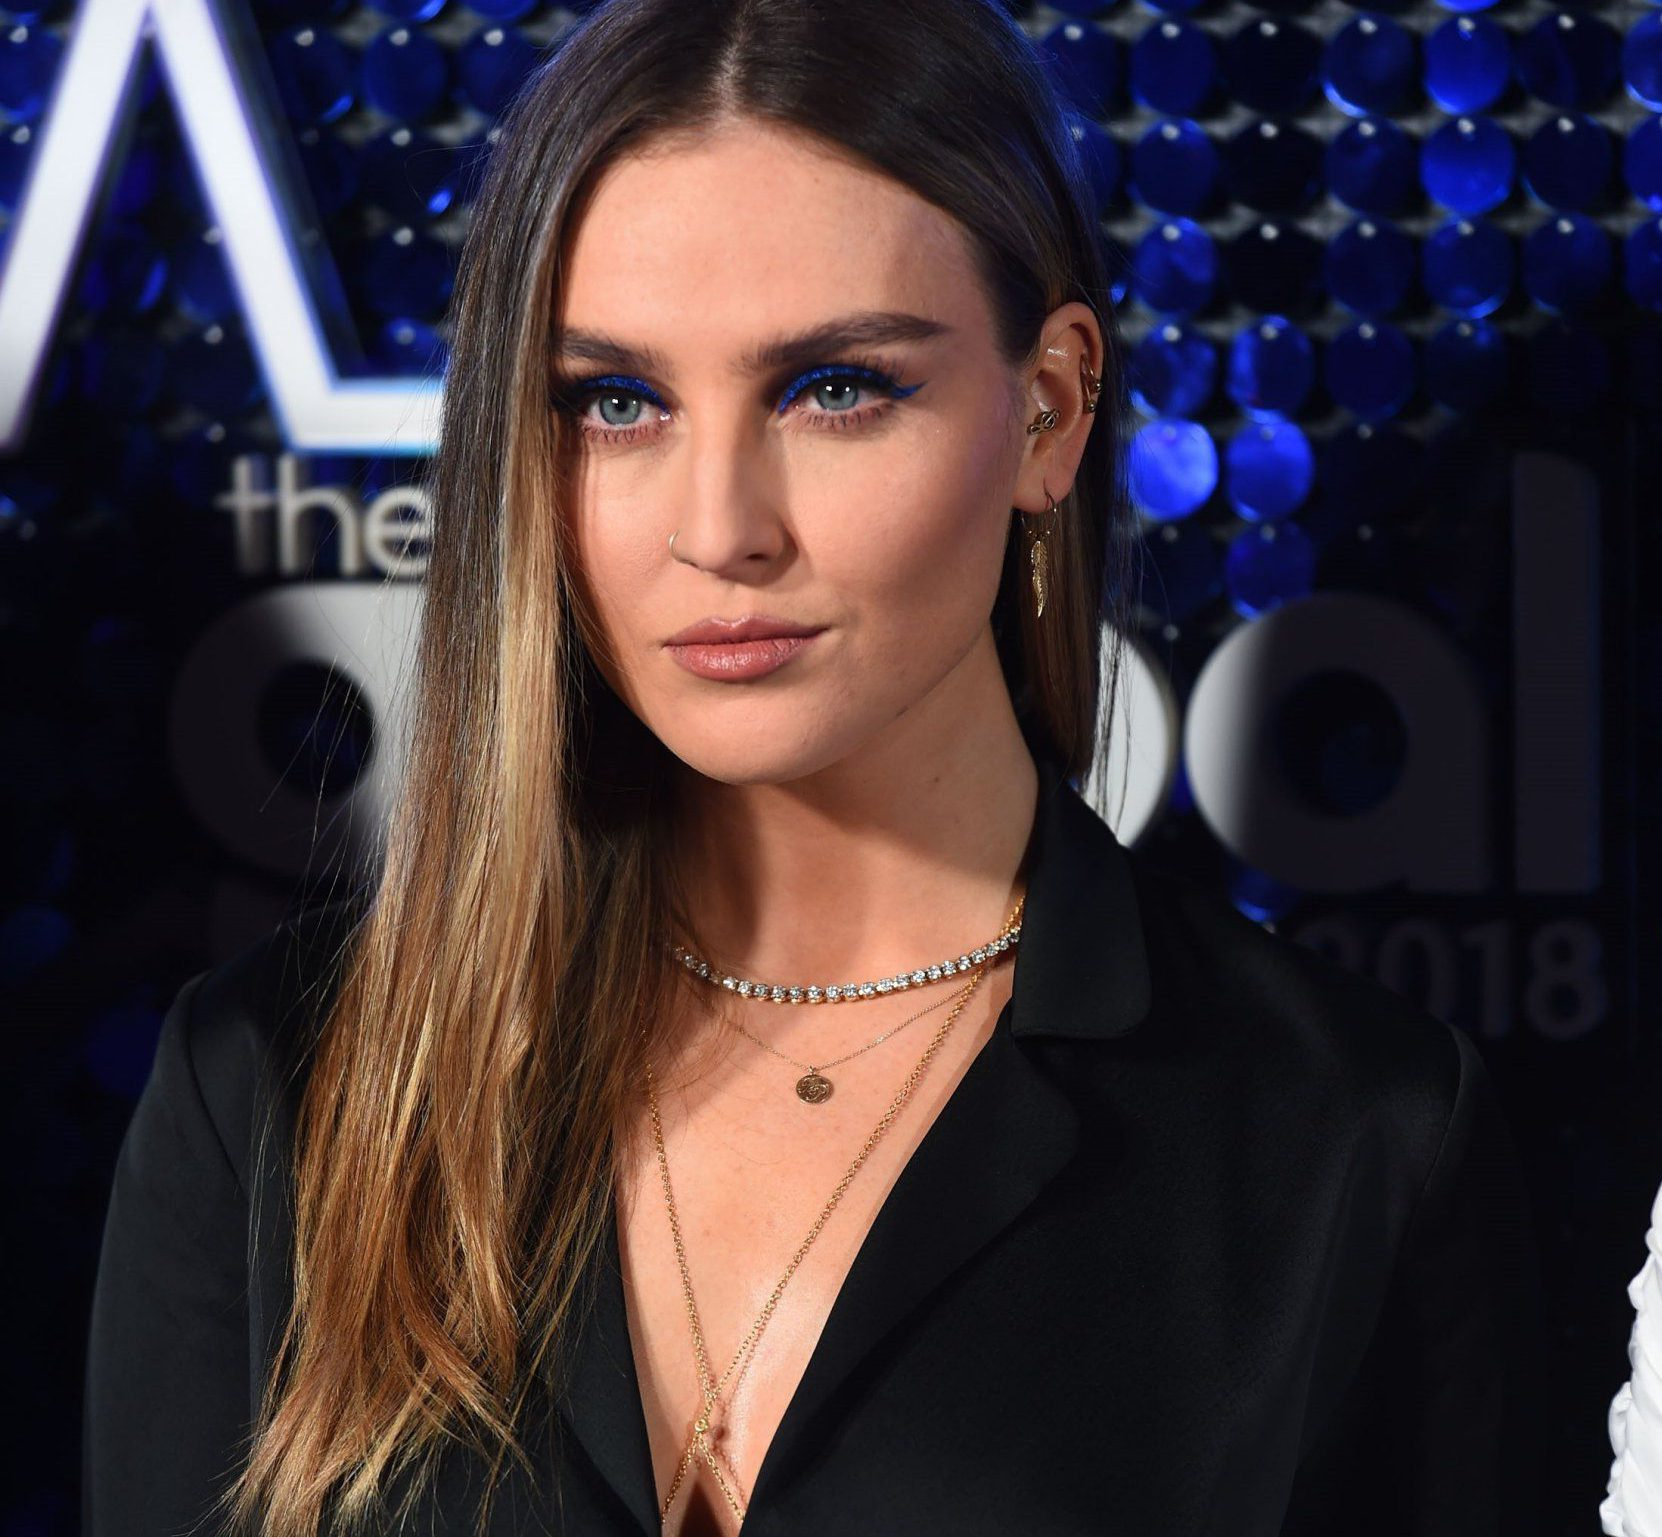 BGUK_1158313 - London, UNITED KINGDOM - The 2018 Global Awards held at the Eventim Apollo, Hammersmith, London Pictured: Perrie Edwards BACKGRID UK 1 MARCH 2018 BYLINE MUST READ: TIMMSY / BACKGRID UK: +44 208 344 2007 / uksales@backgrid.com USA: +1 310 798 9111 / usasales@backgrid.com *UK Clients - Pictures Containing Children Please Pixelate Face Prior To Publication*